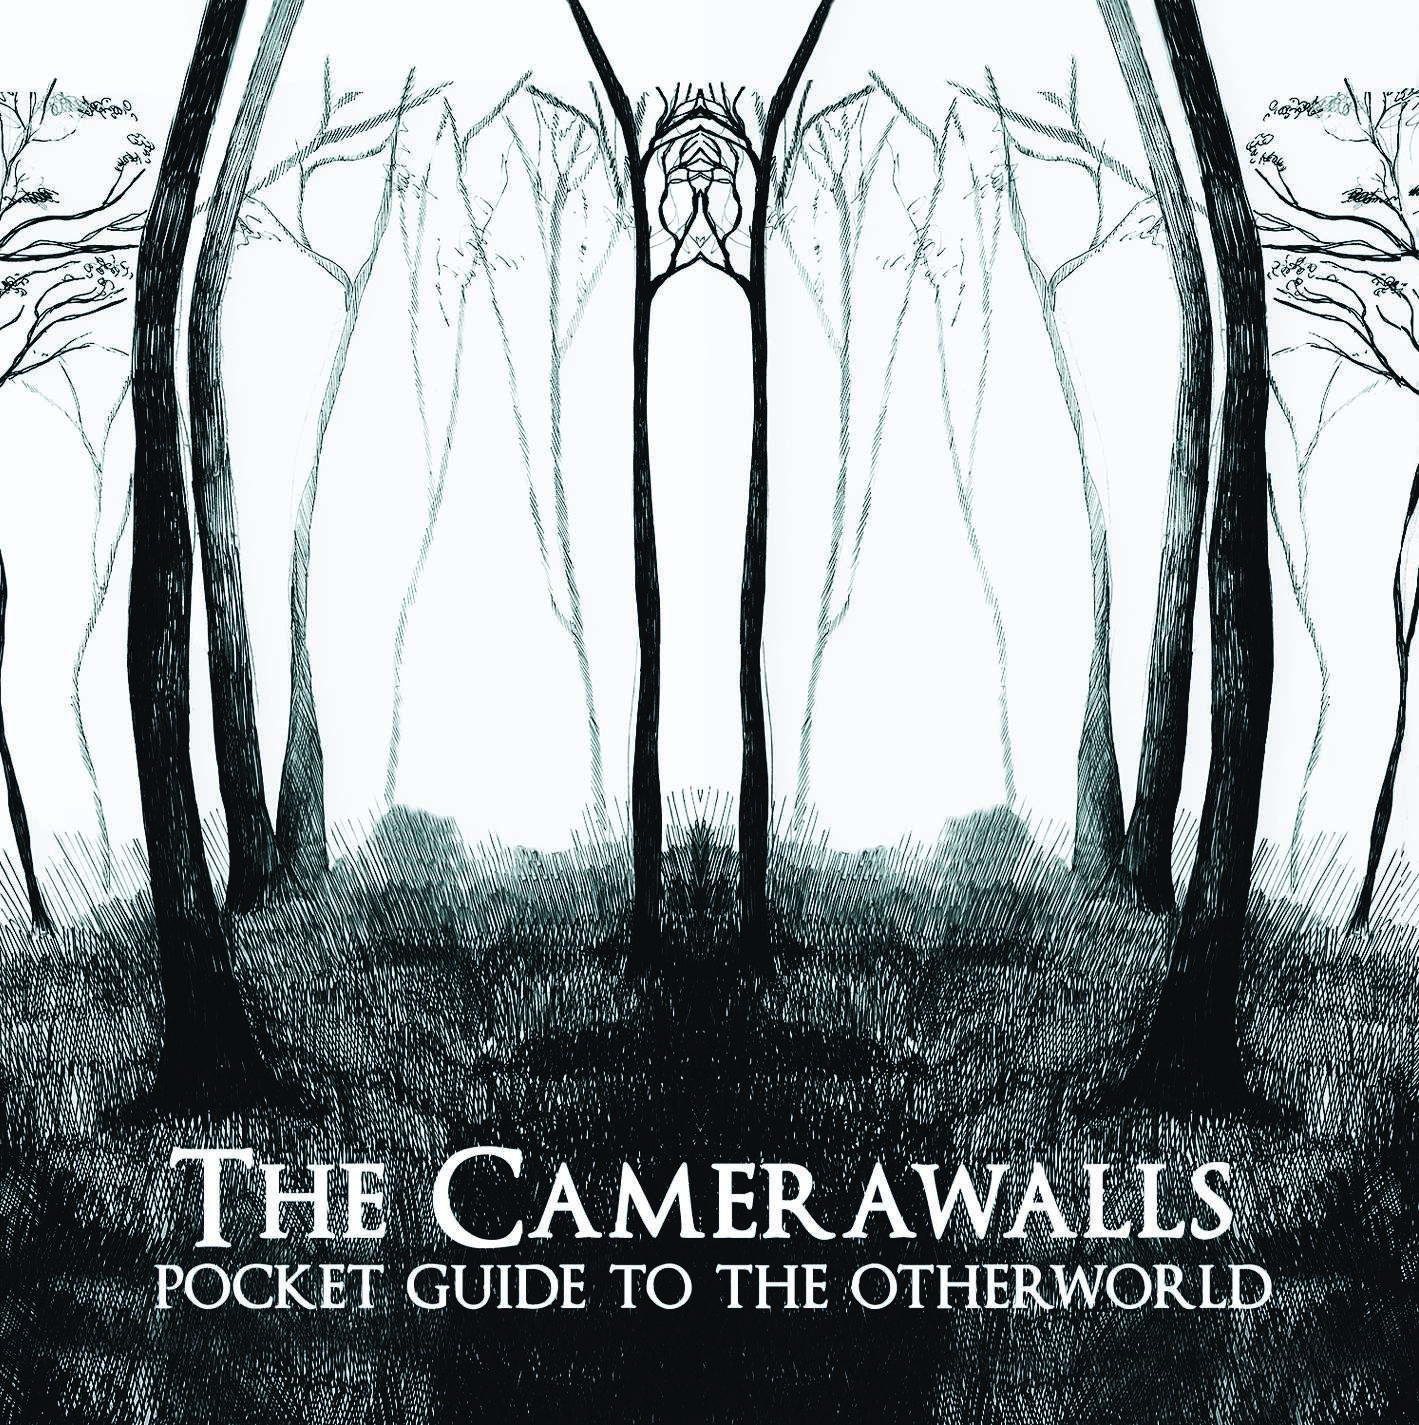 Pocket Guide To The Otherword